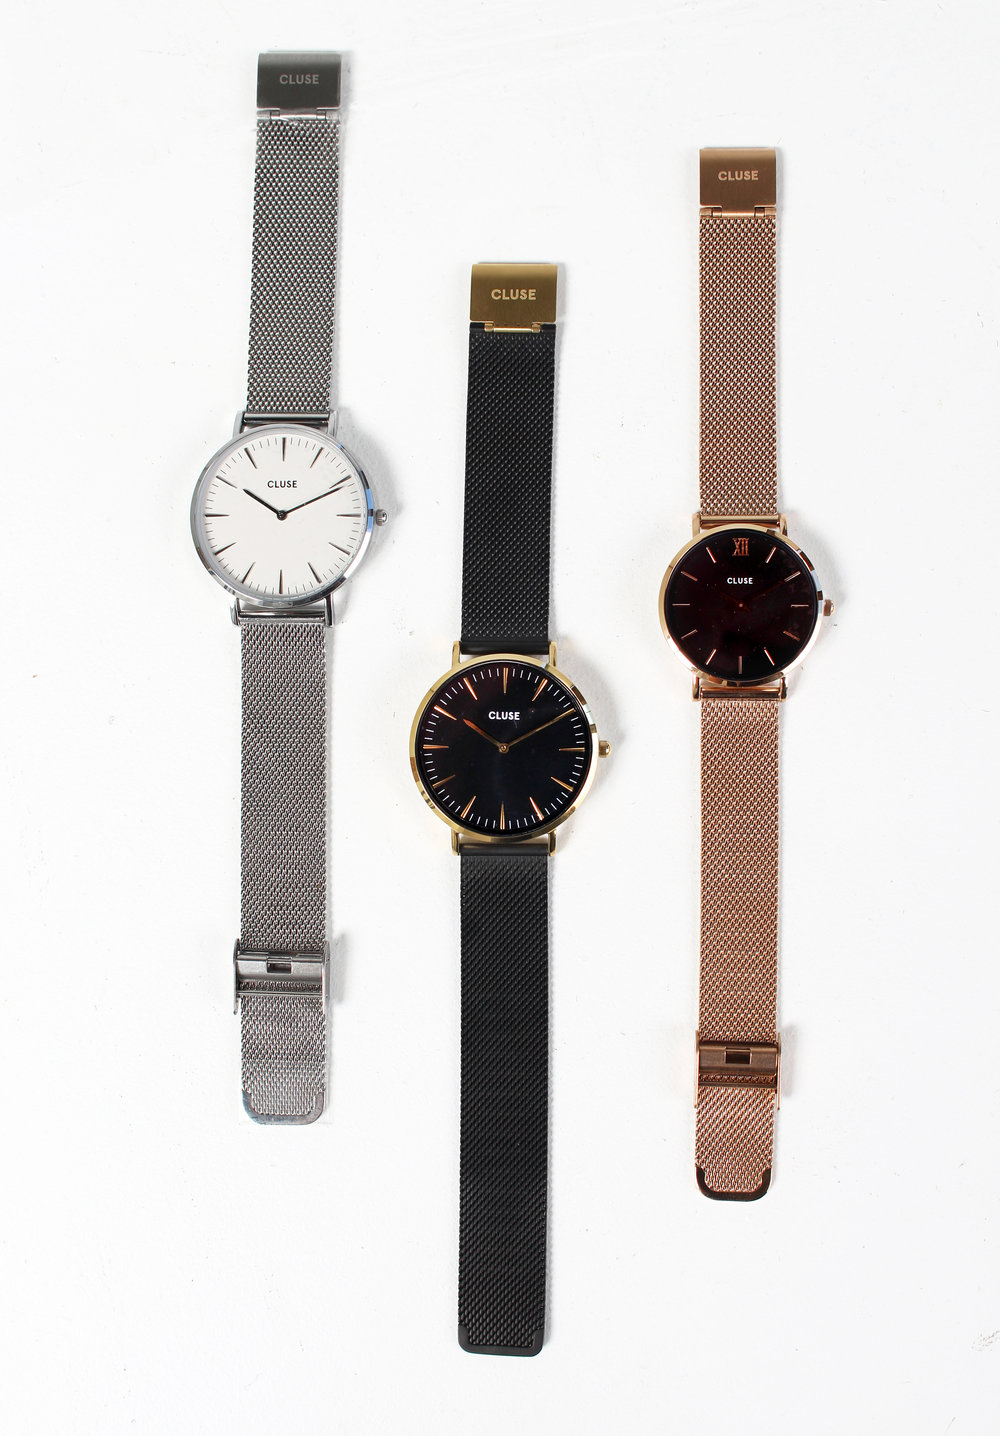 Cluse watches are a classic base to every wardrobe. You can find them at e.Allen this Christmas for your special someone! $98-$148  e.Allen The Fountains Murfreesboro 1500 Medical Center Pkwy